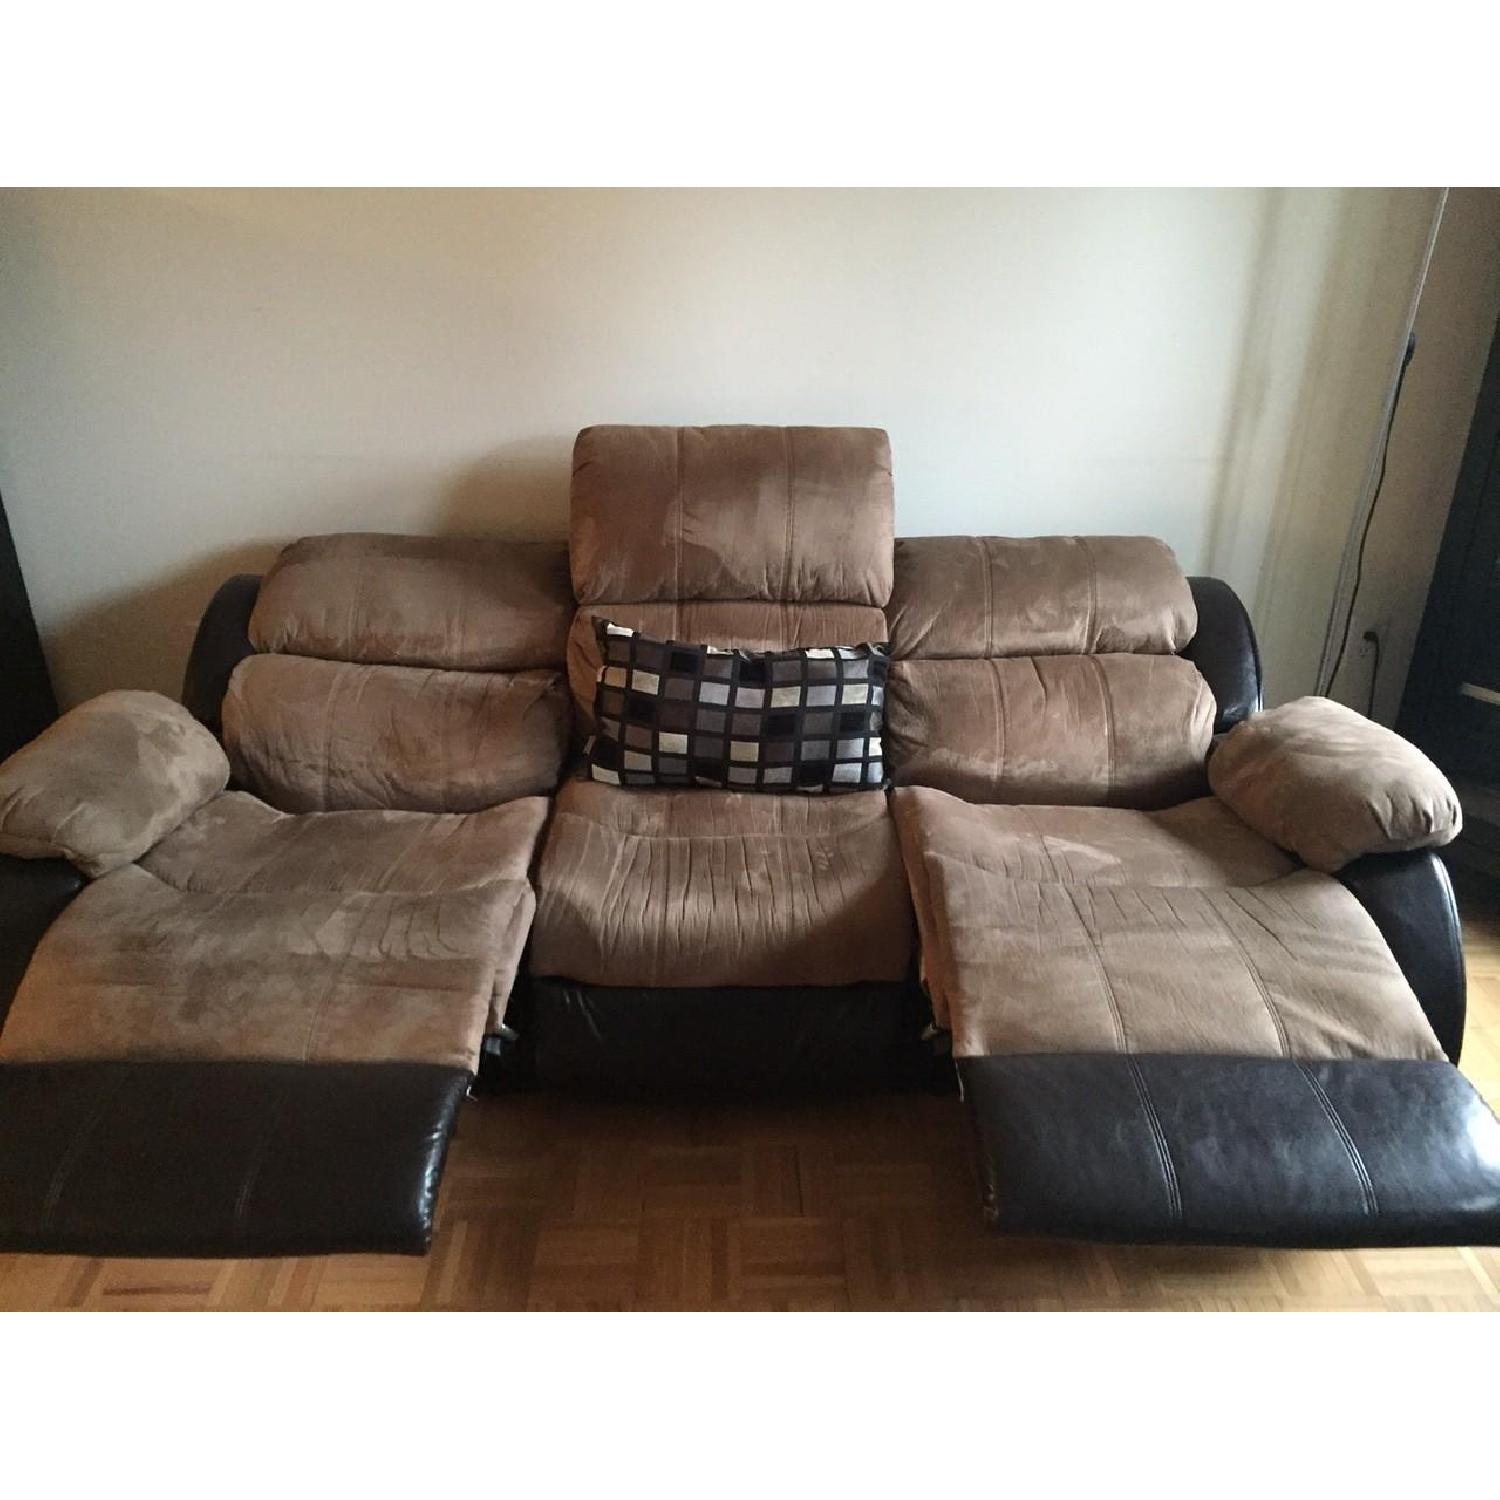 Ashley's Presley Dual Reclining Sofa in Cocoa - image-1